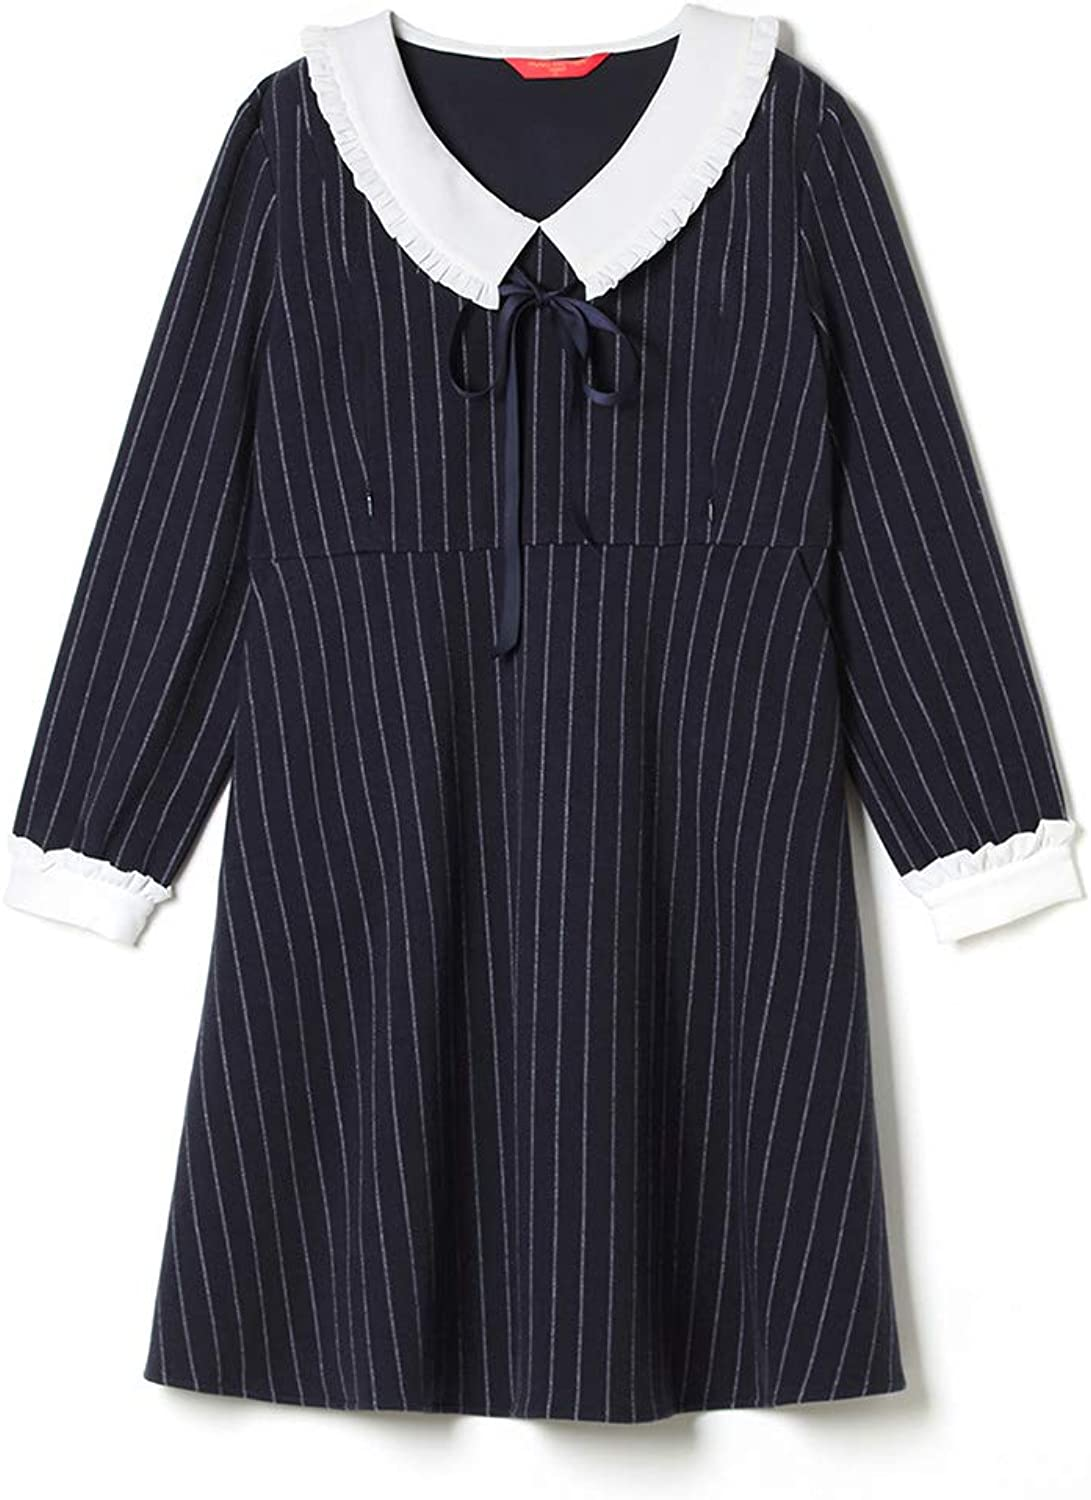 Casual Maternity Clothes Four Seasons Skirt Long Sleeves Stripes Dress Breastfeeding Clothes Pregnancy Clothes Soft and Snug Pregnant Women Gift Wear to Work (color   Natural, Size   M)